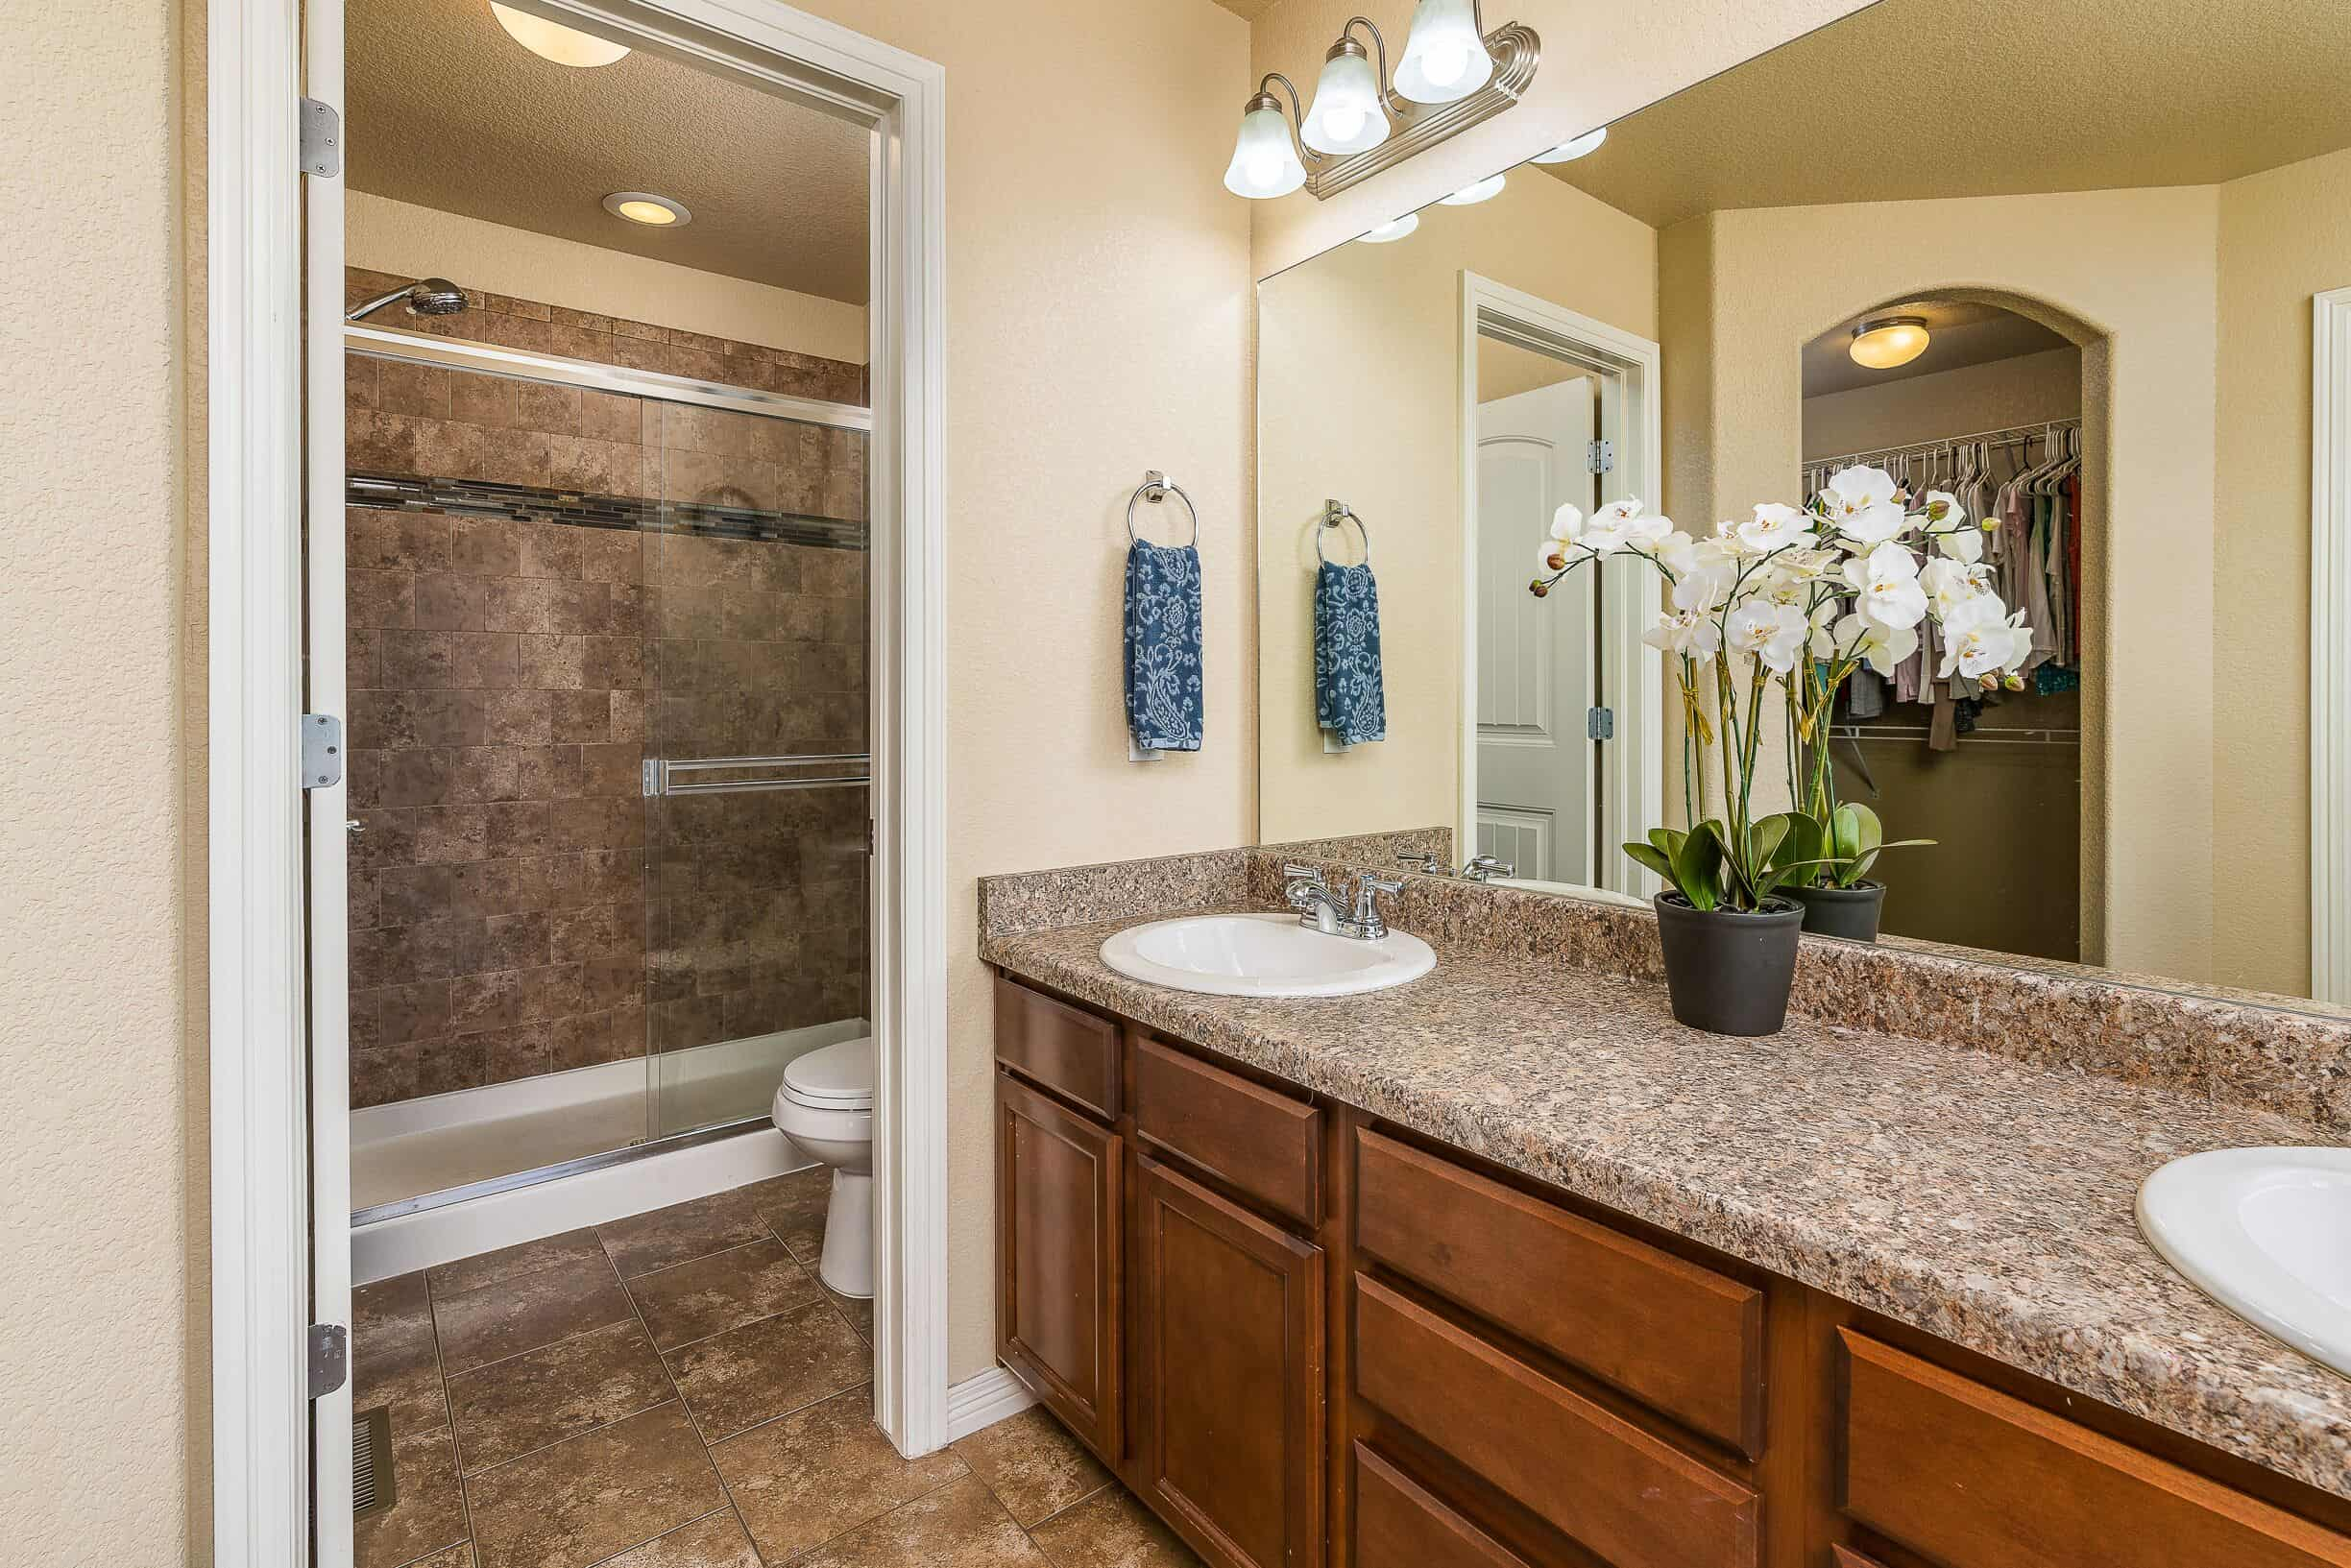 Master Bathroom with Separate Shower and Toilet Room